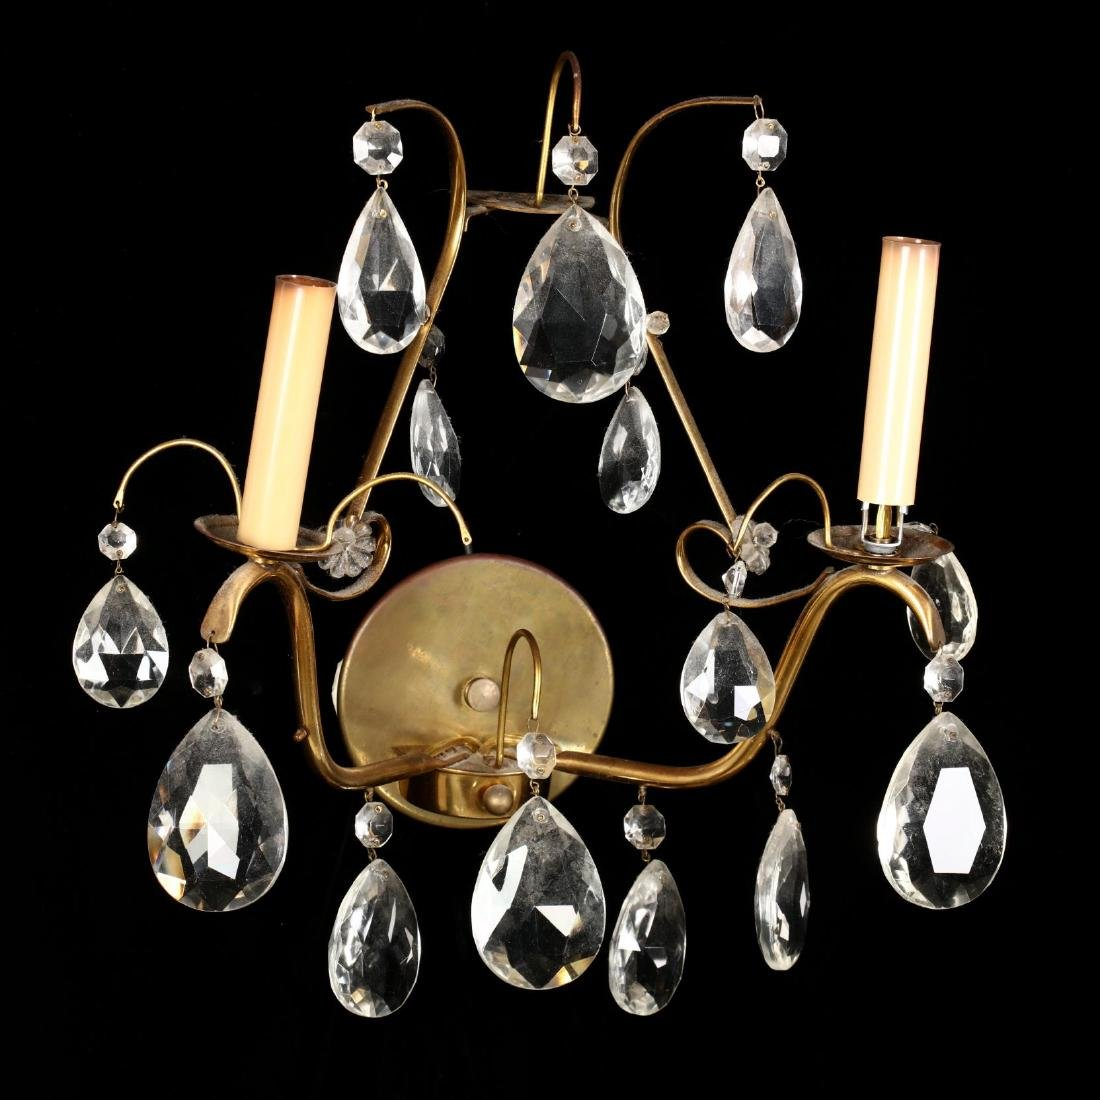 Pair of Italianate Brass and Drop Prism Wall Sconces - 3